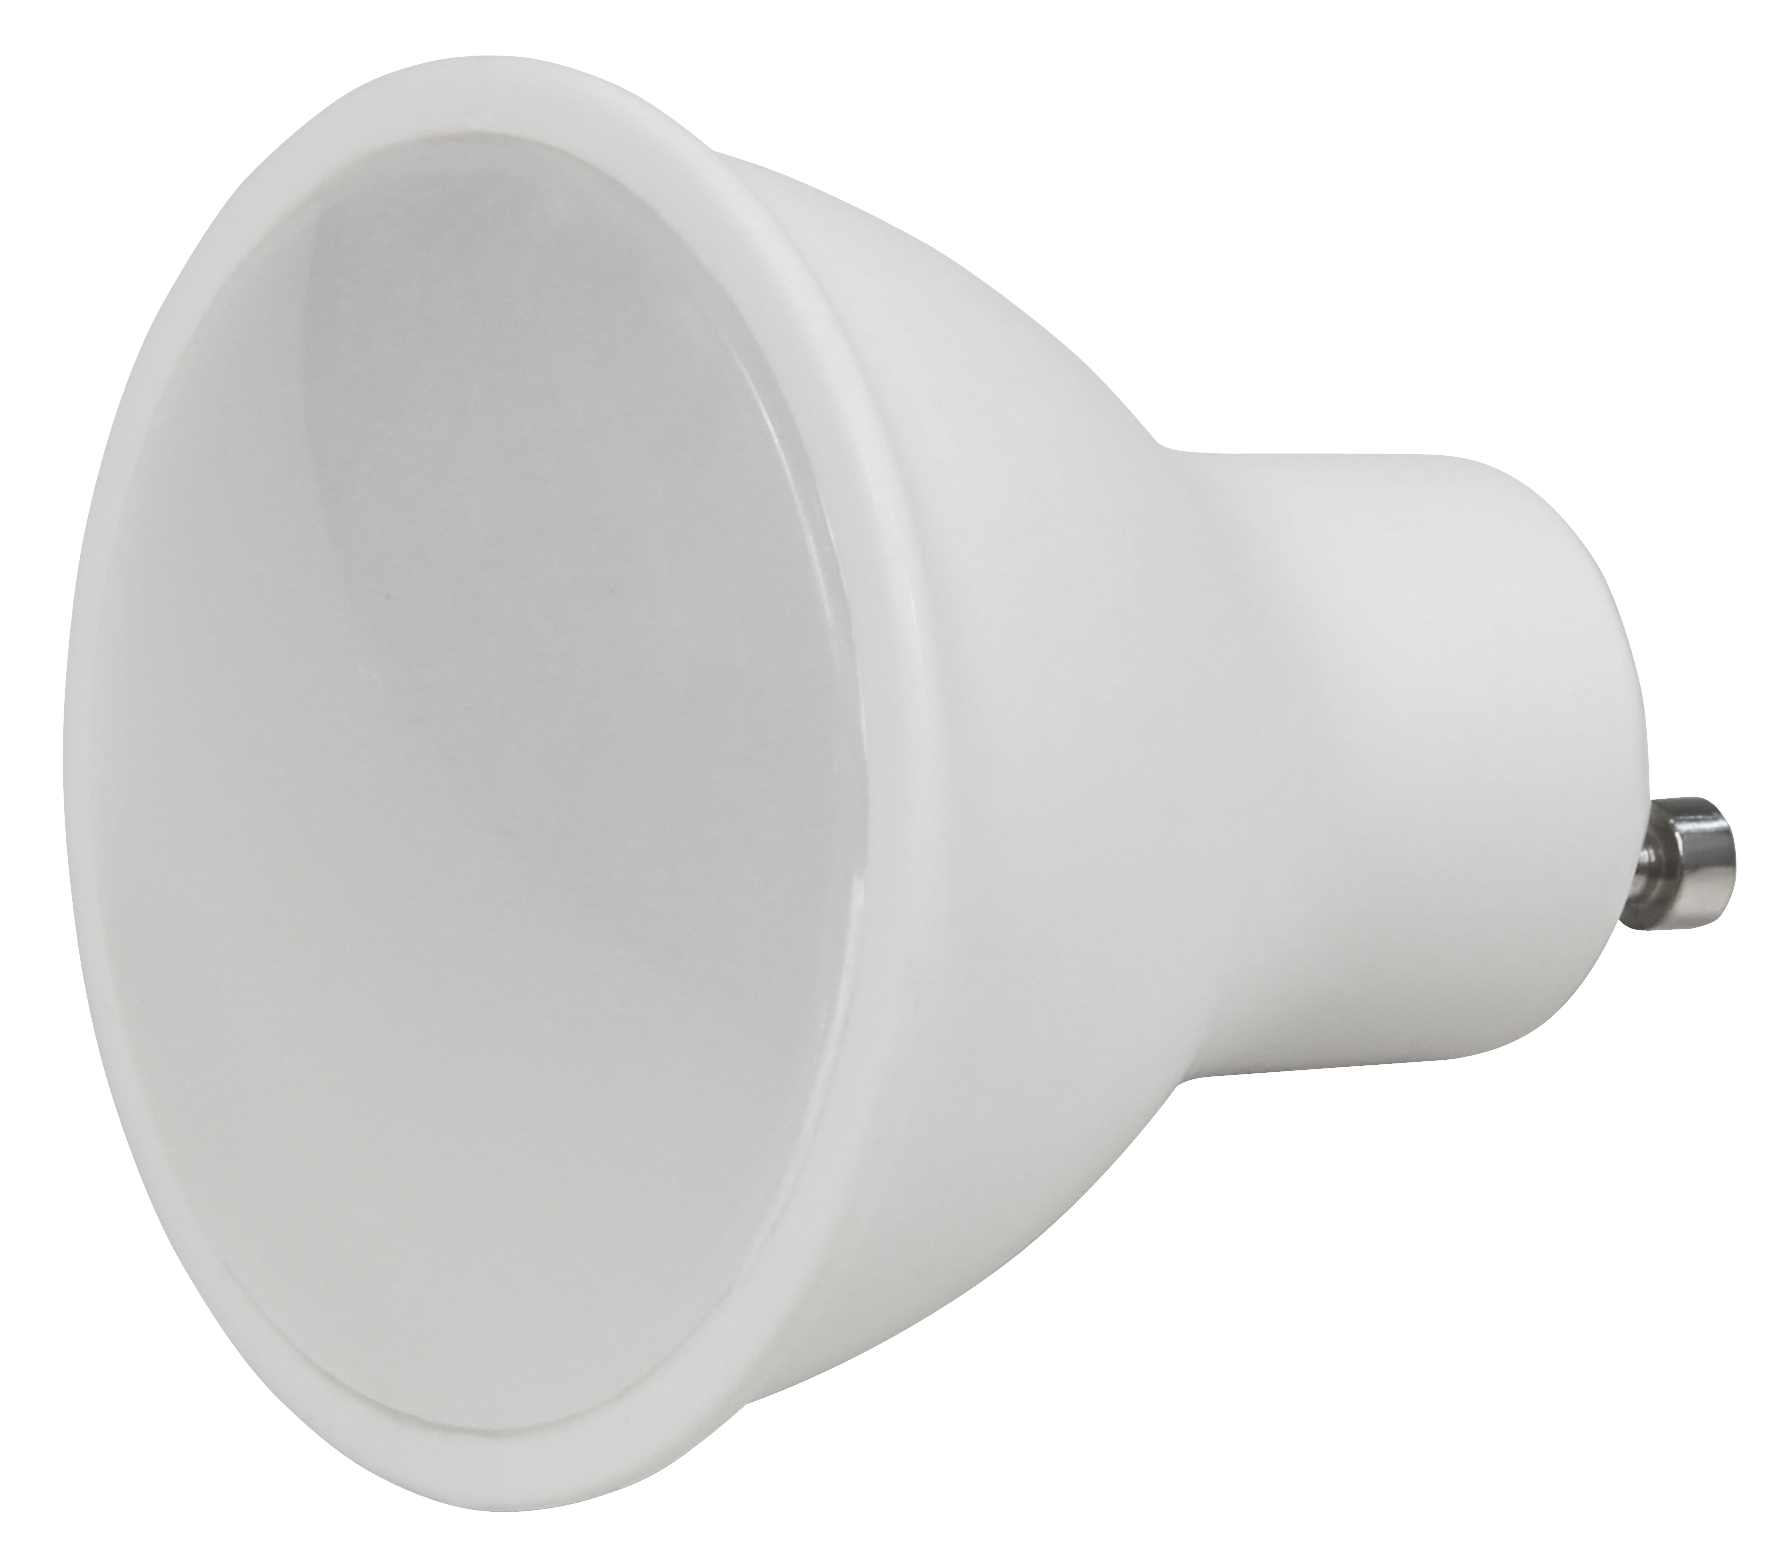 LED-Strahler McShine ''PV-90'' GU10, 9W, 900lm, 120°, 3000K, warmweiß